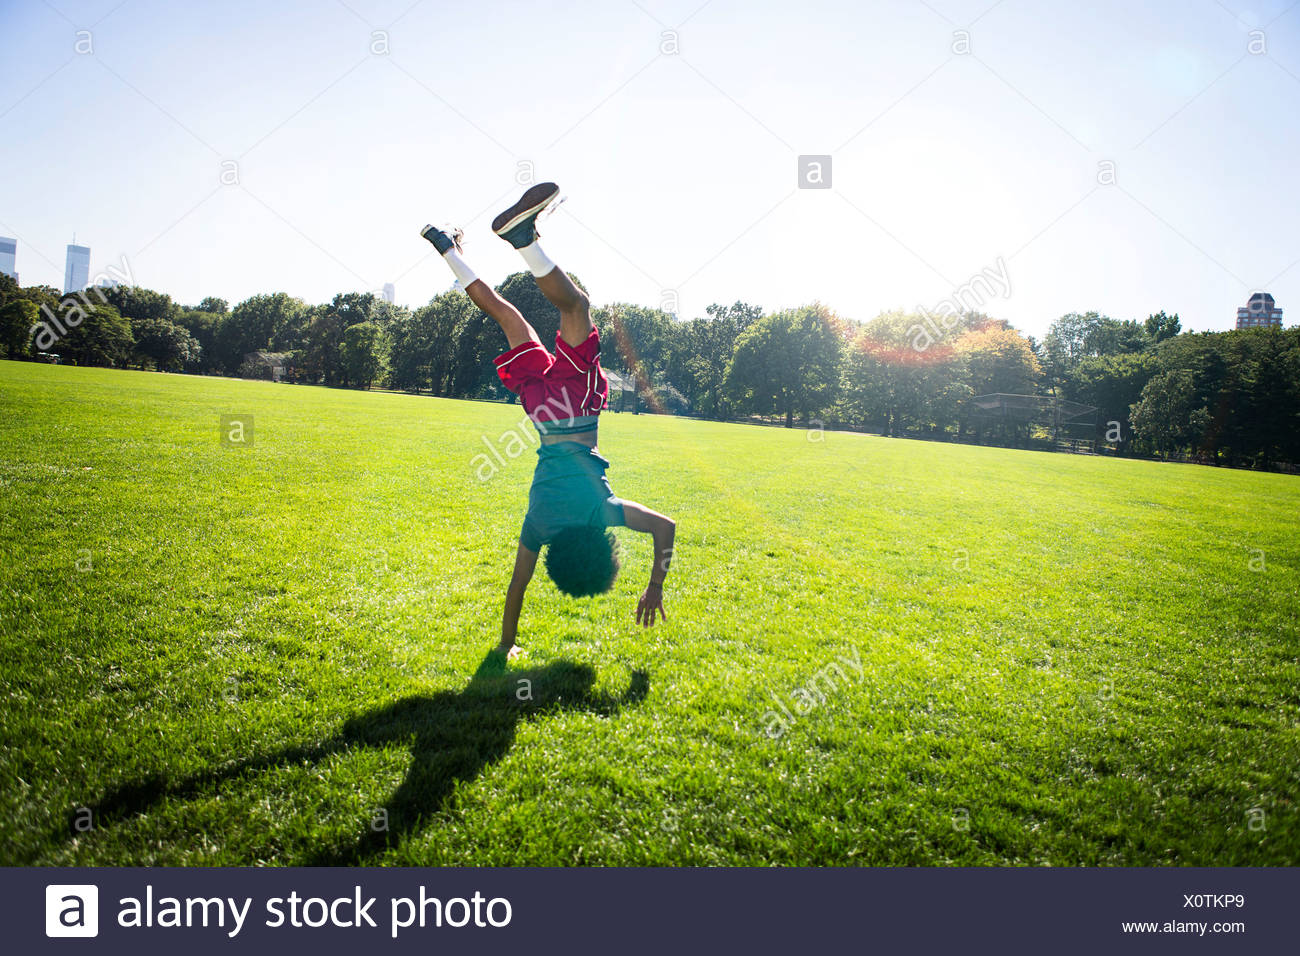 Young man doing cartwheel in park - Stock Image